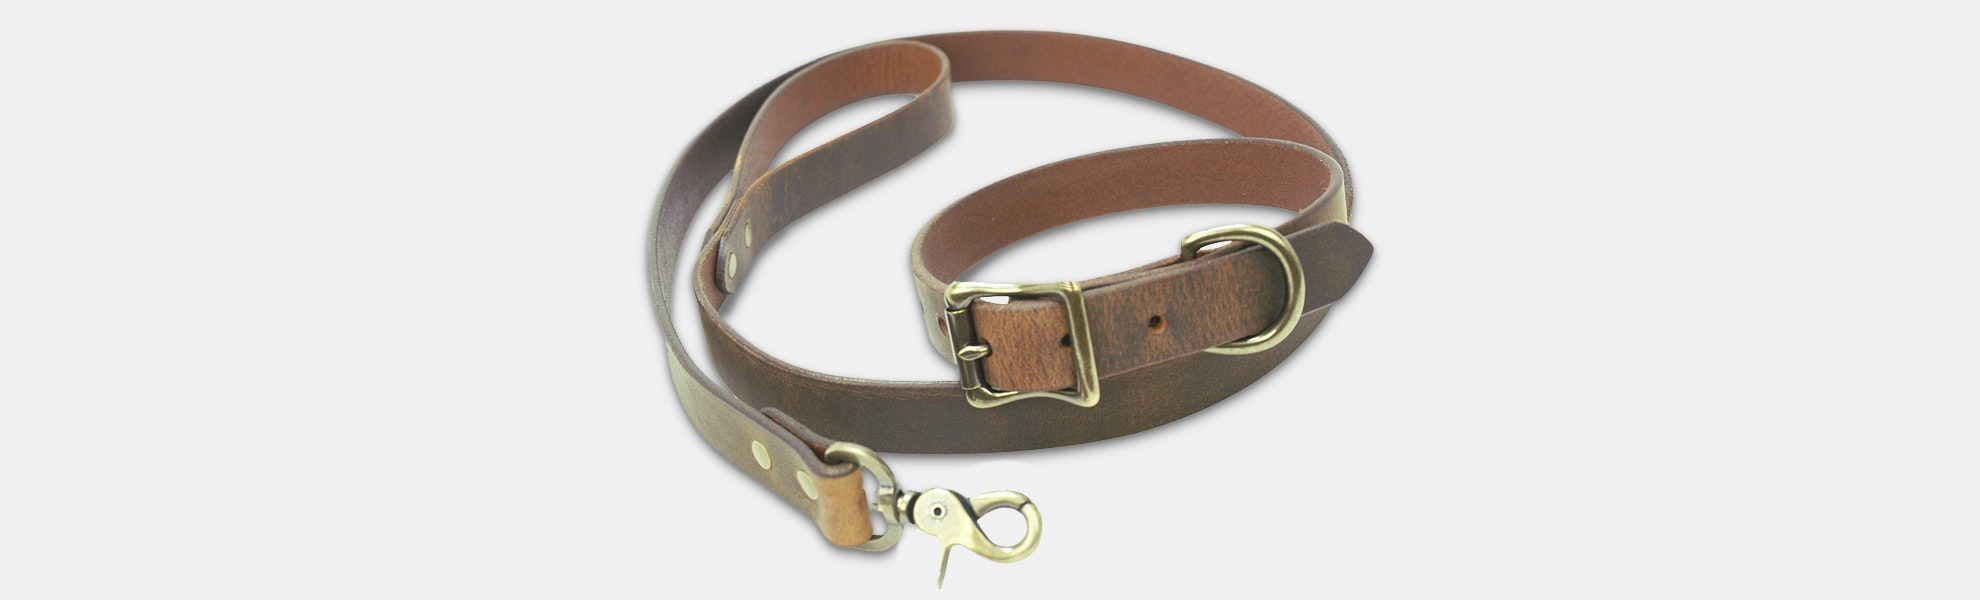 LM Products Huckleberry Dog Collar & Leash